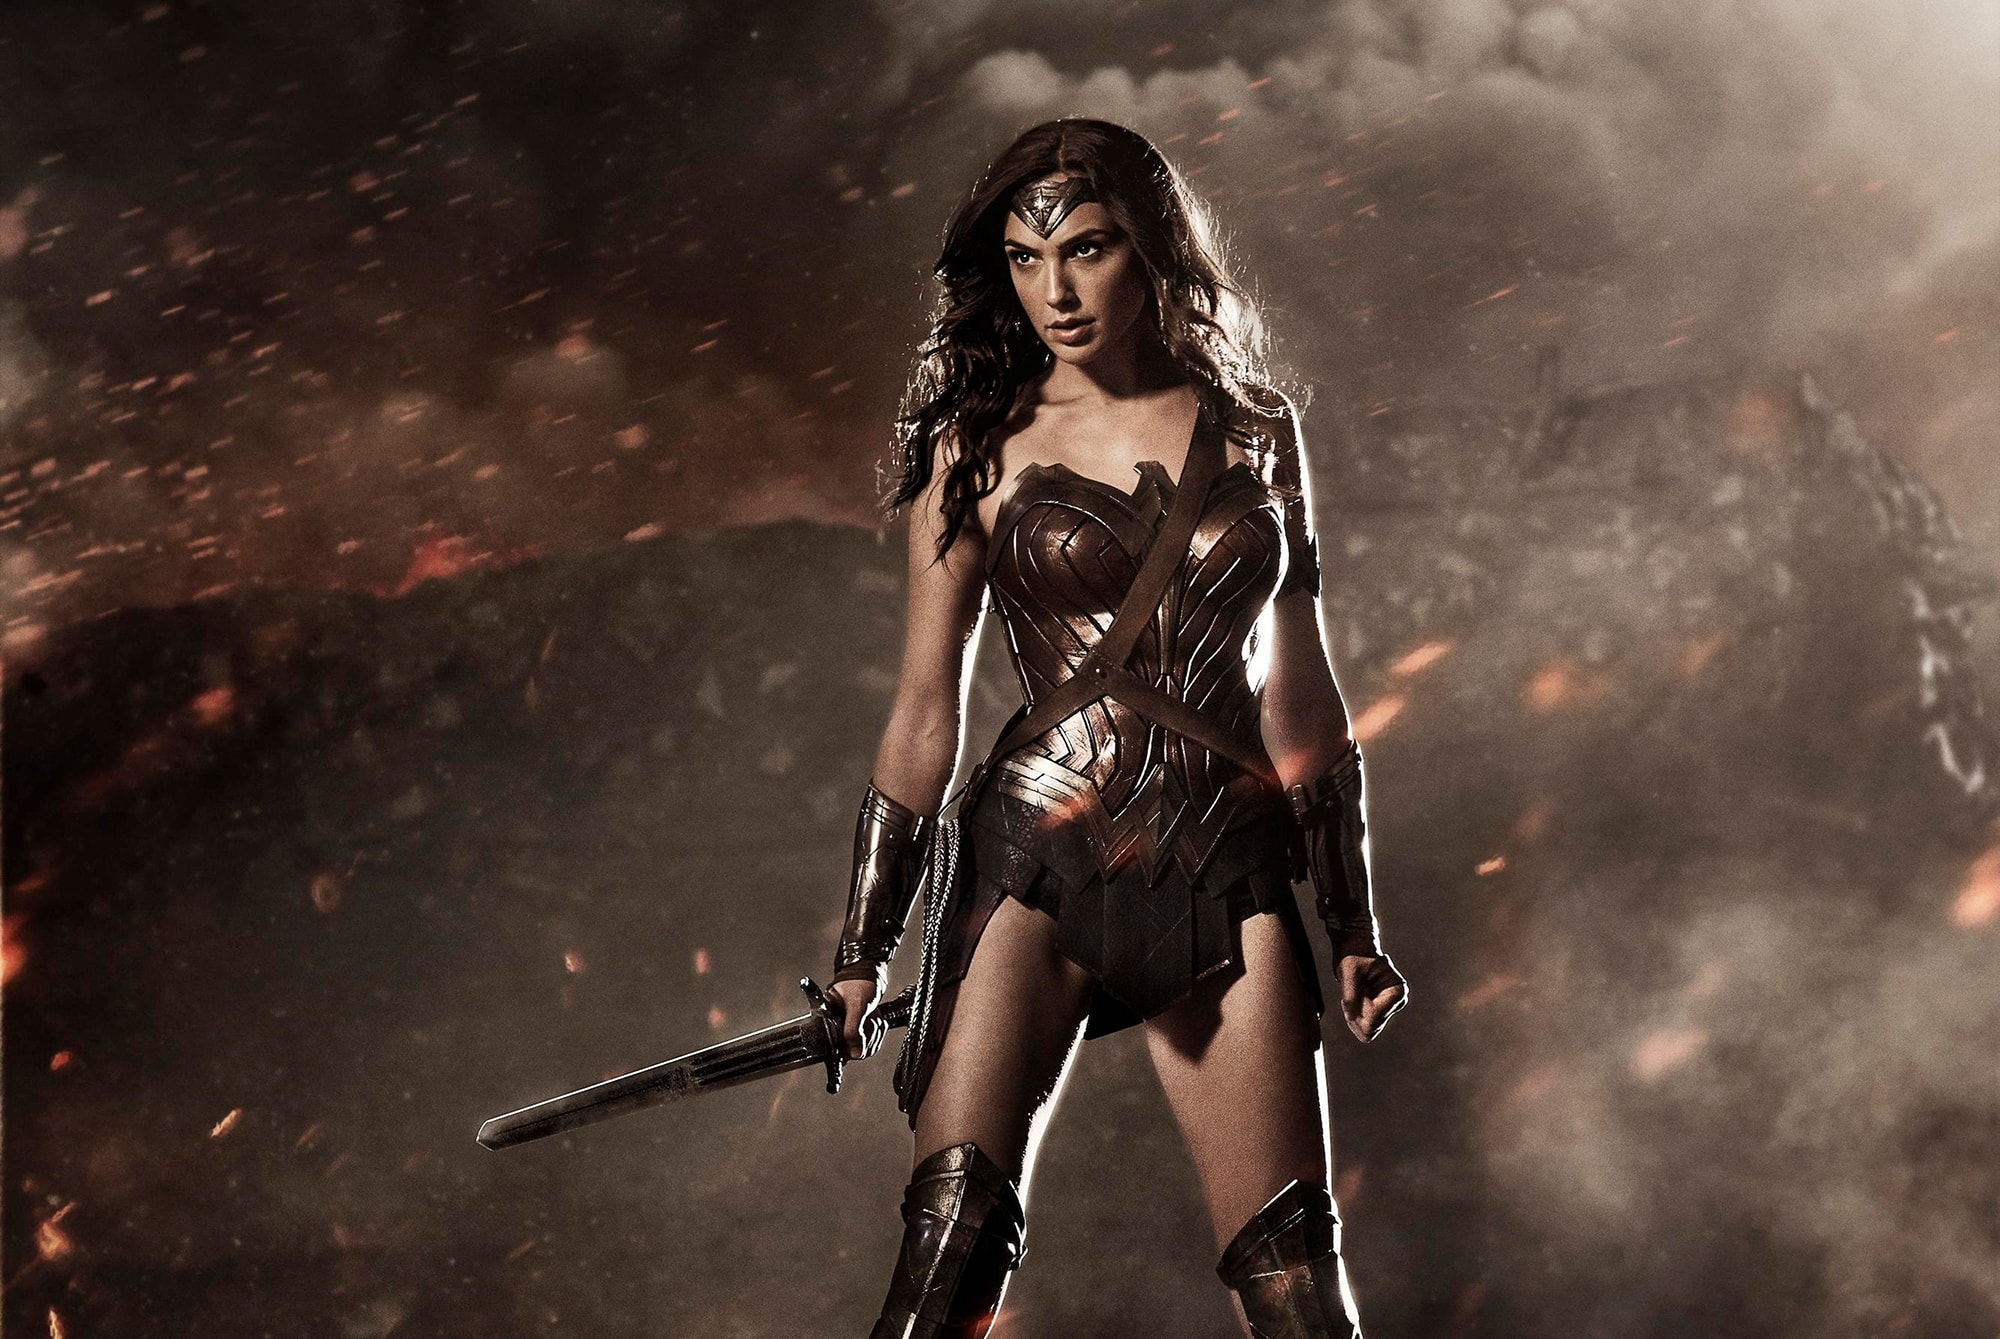 Fans Appeal For Making Next 'Wonder Woman' A Bi-Sexual